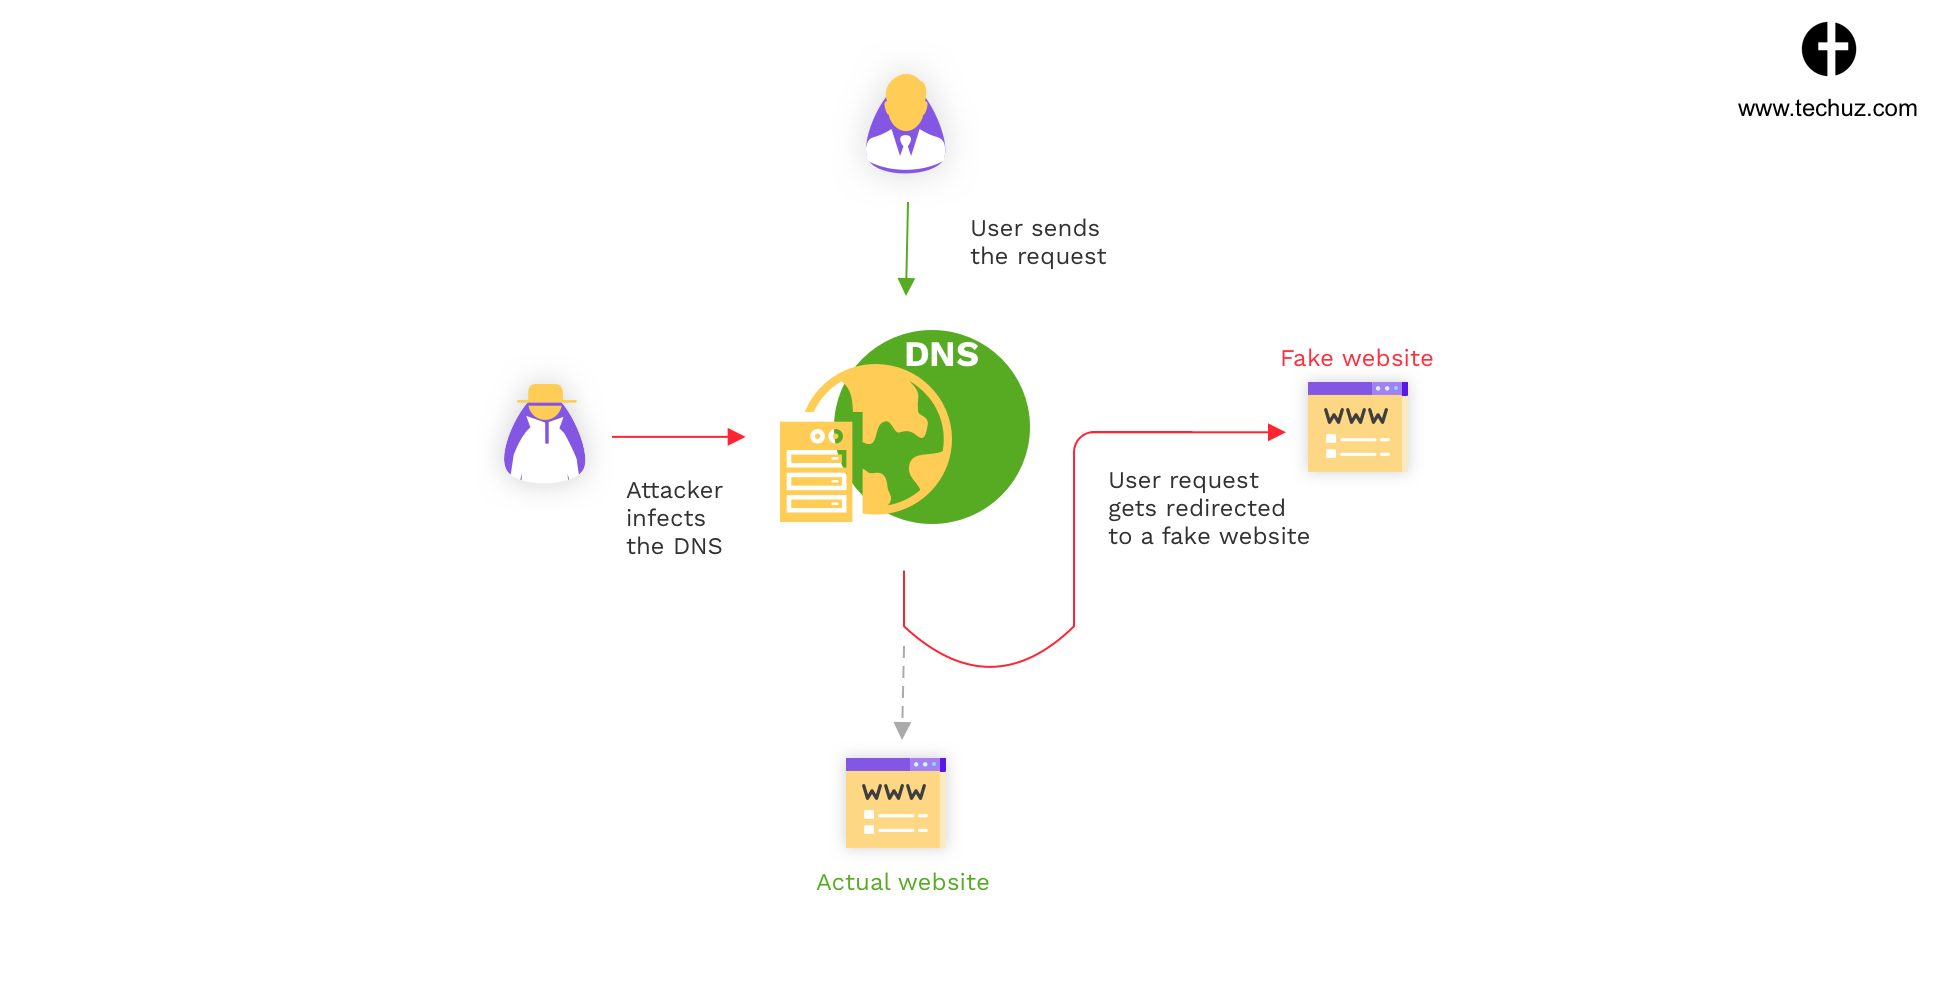 DNS Cache Poisoning - Web Security Check - Website Security Breaches and Tips to Prevent from Hackers